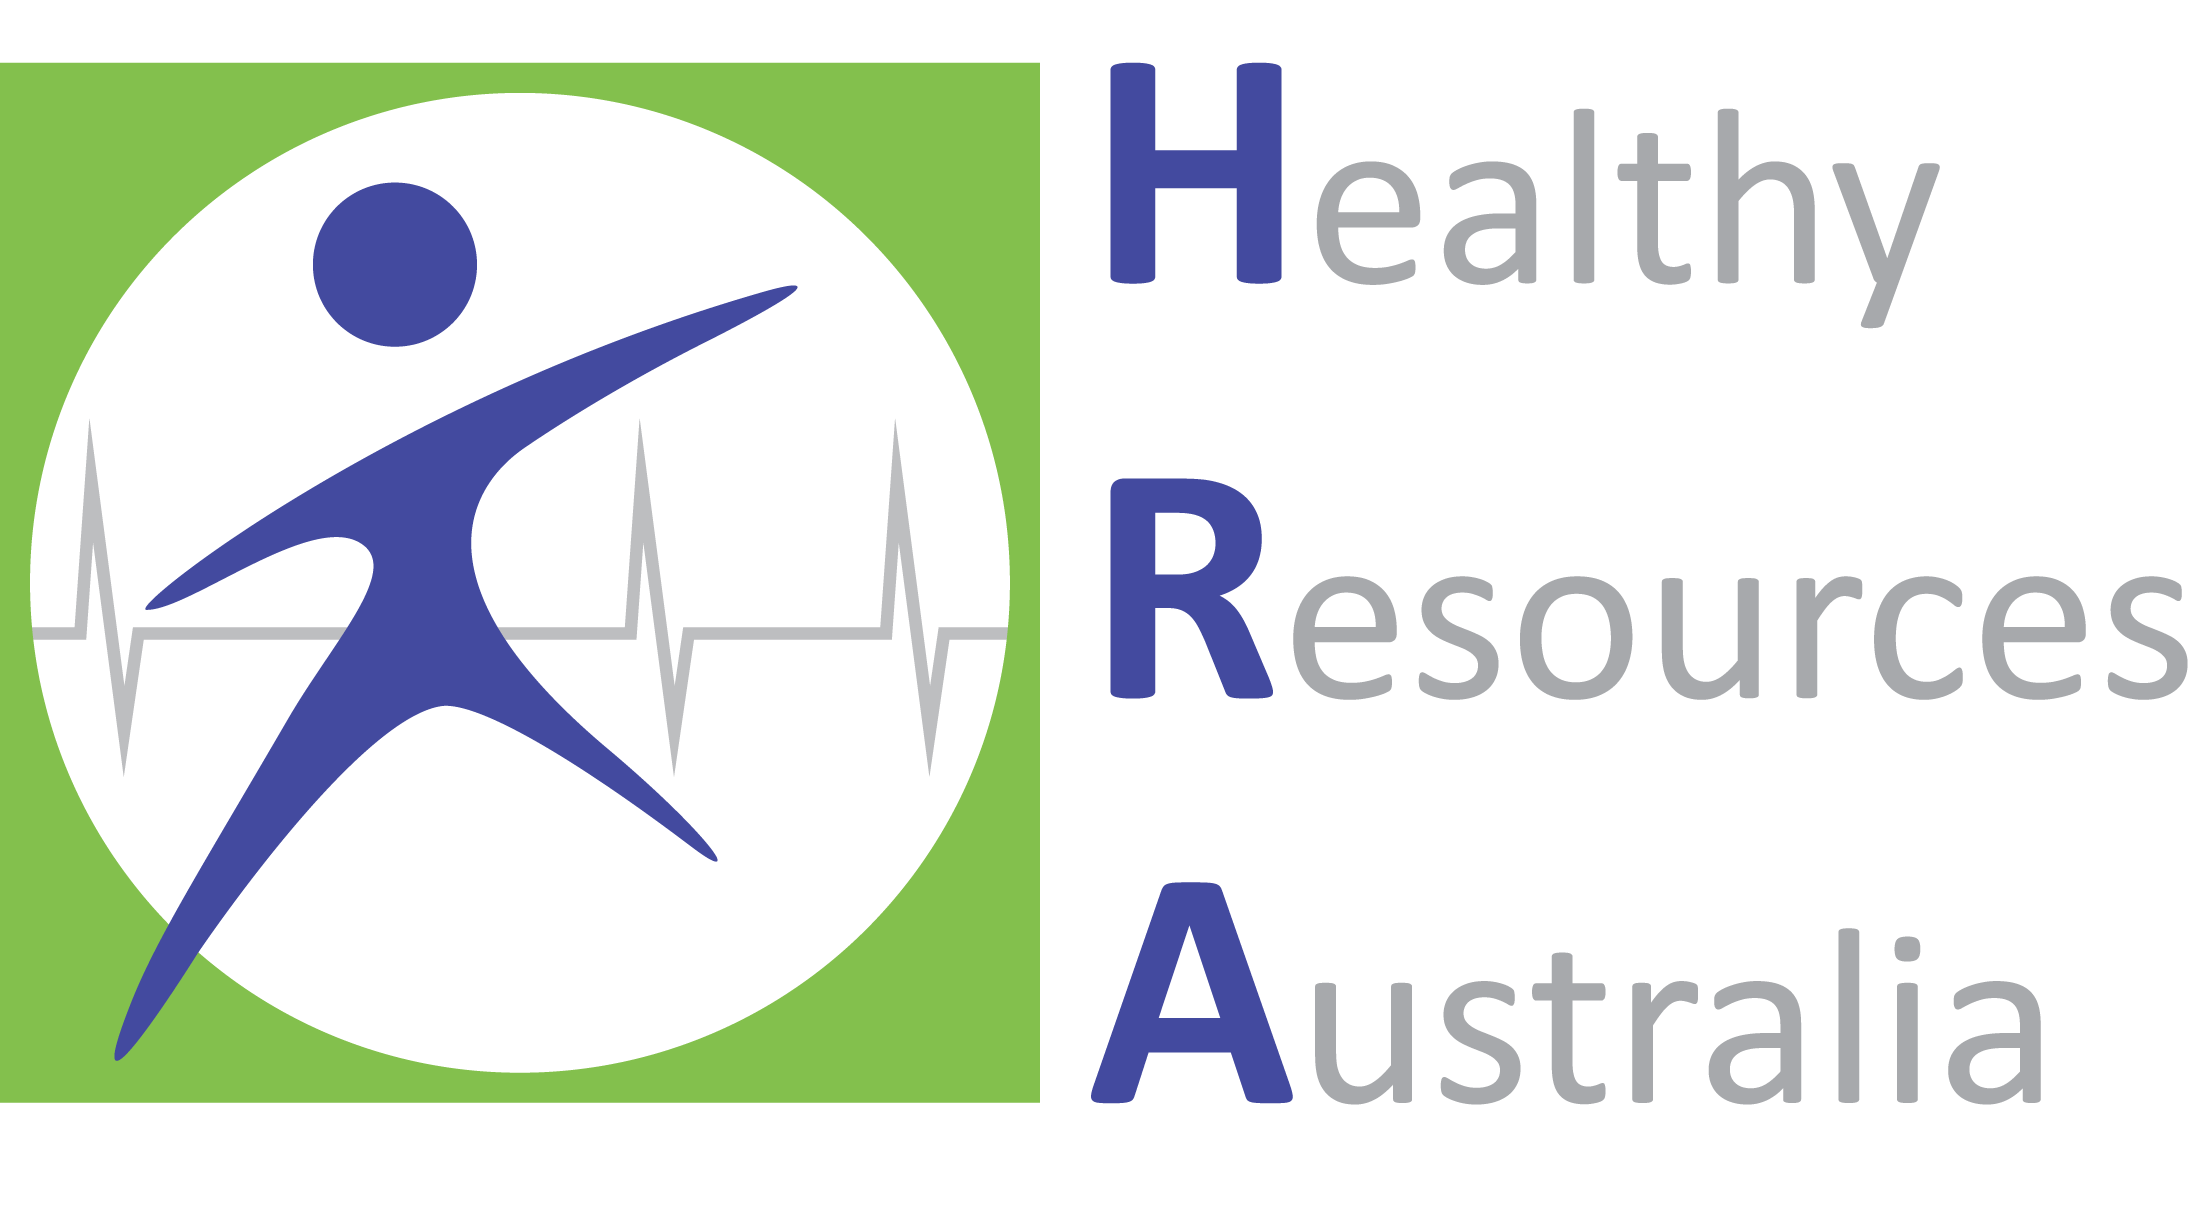 Health Resources Australia